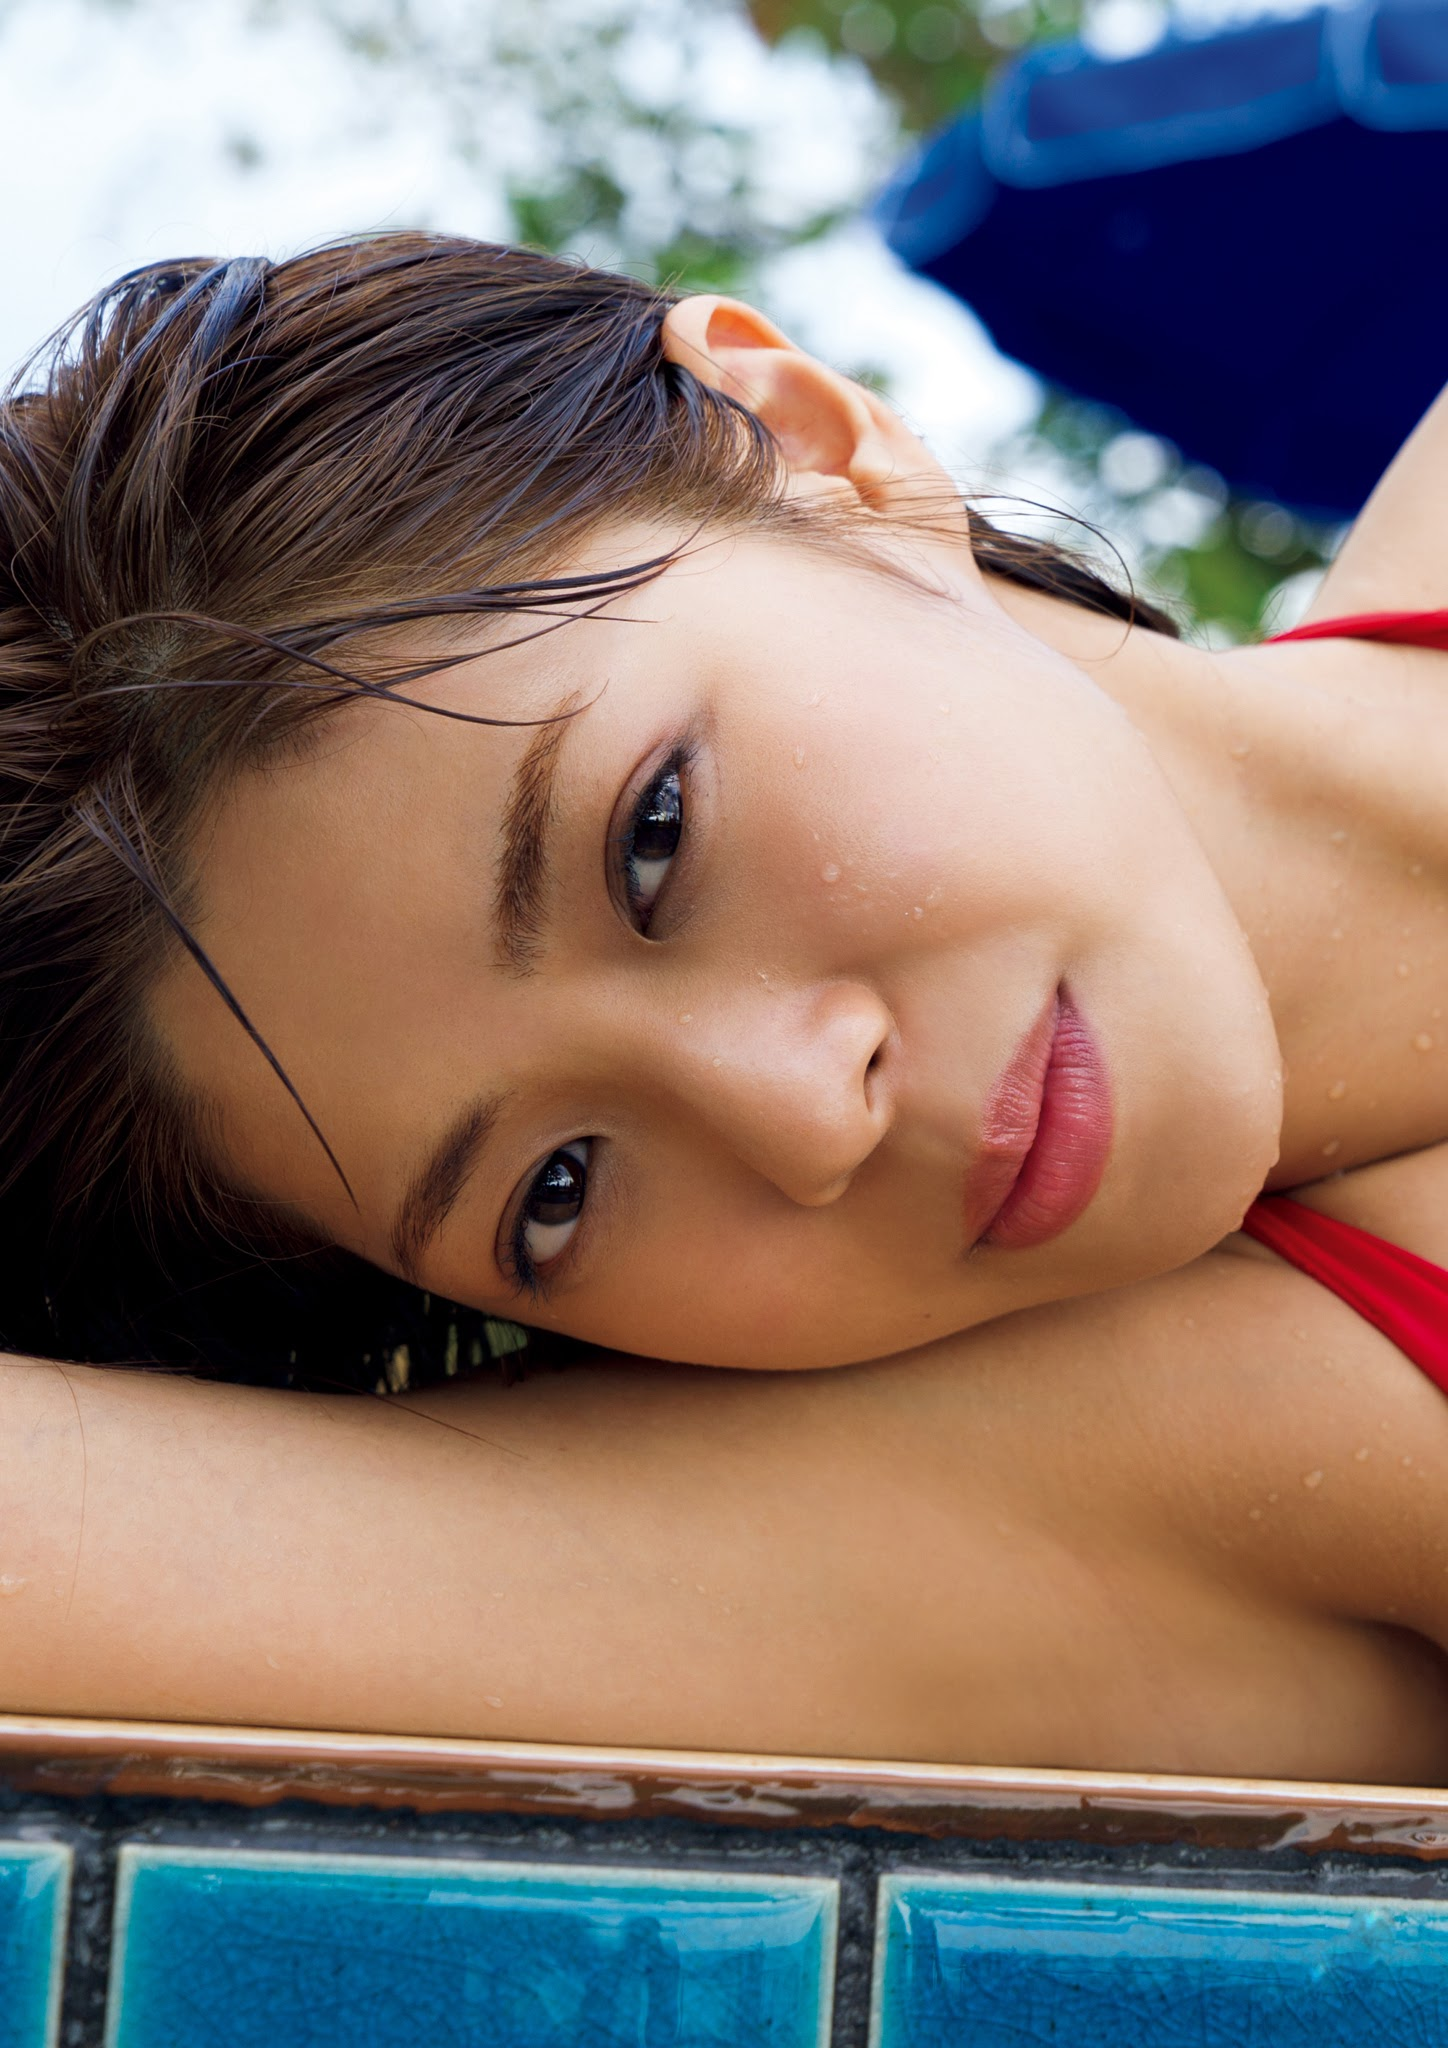 Super body of H cup Minami Wachi 2020 that exposes body and mind in tropical Thailand087